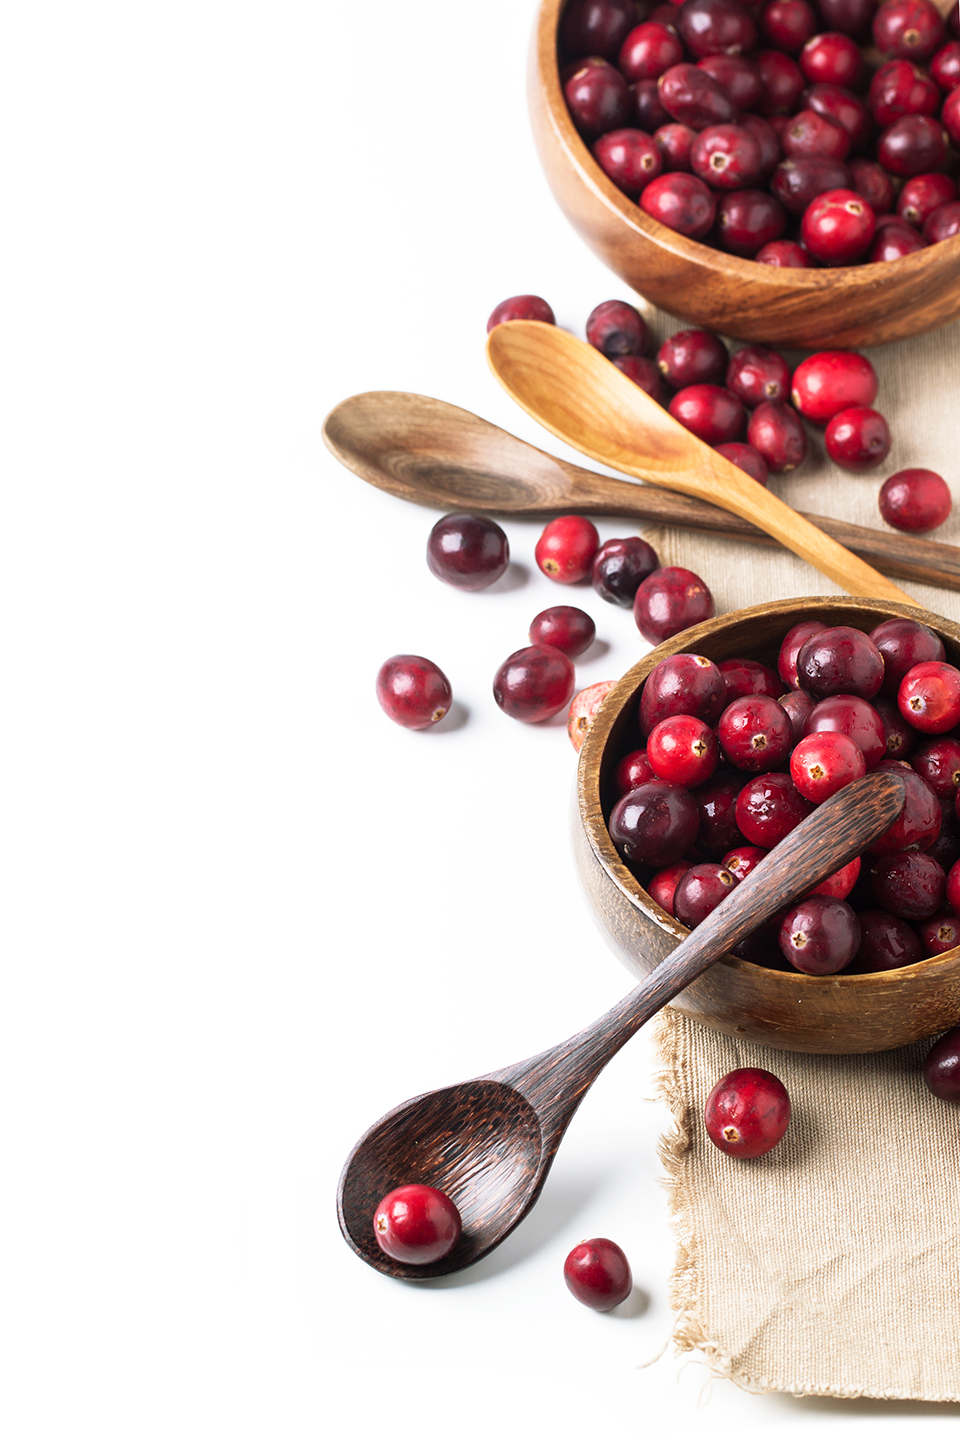 cranberries-for-recipe-page.jpg